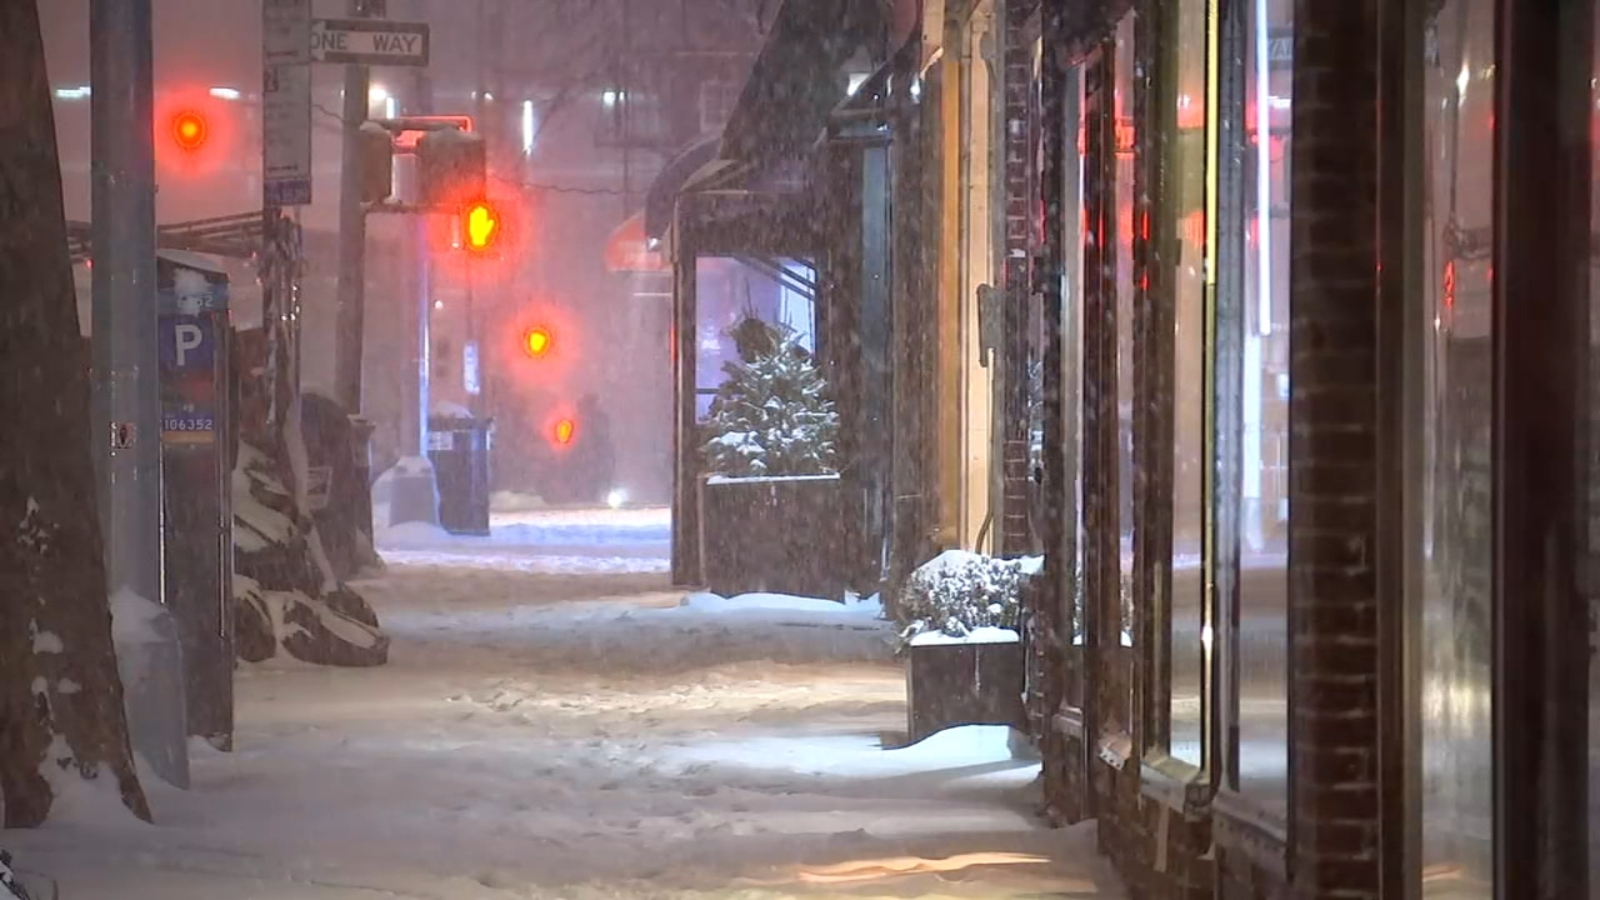 New York City snow: City looking at biggest snowfall in years, outdoor dining shuttered - ABC7 New York